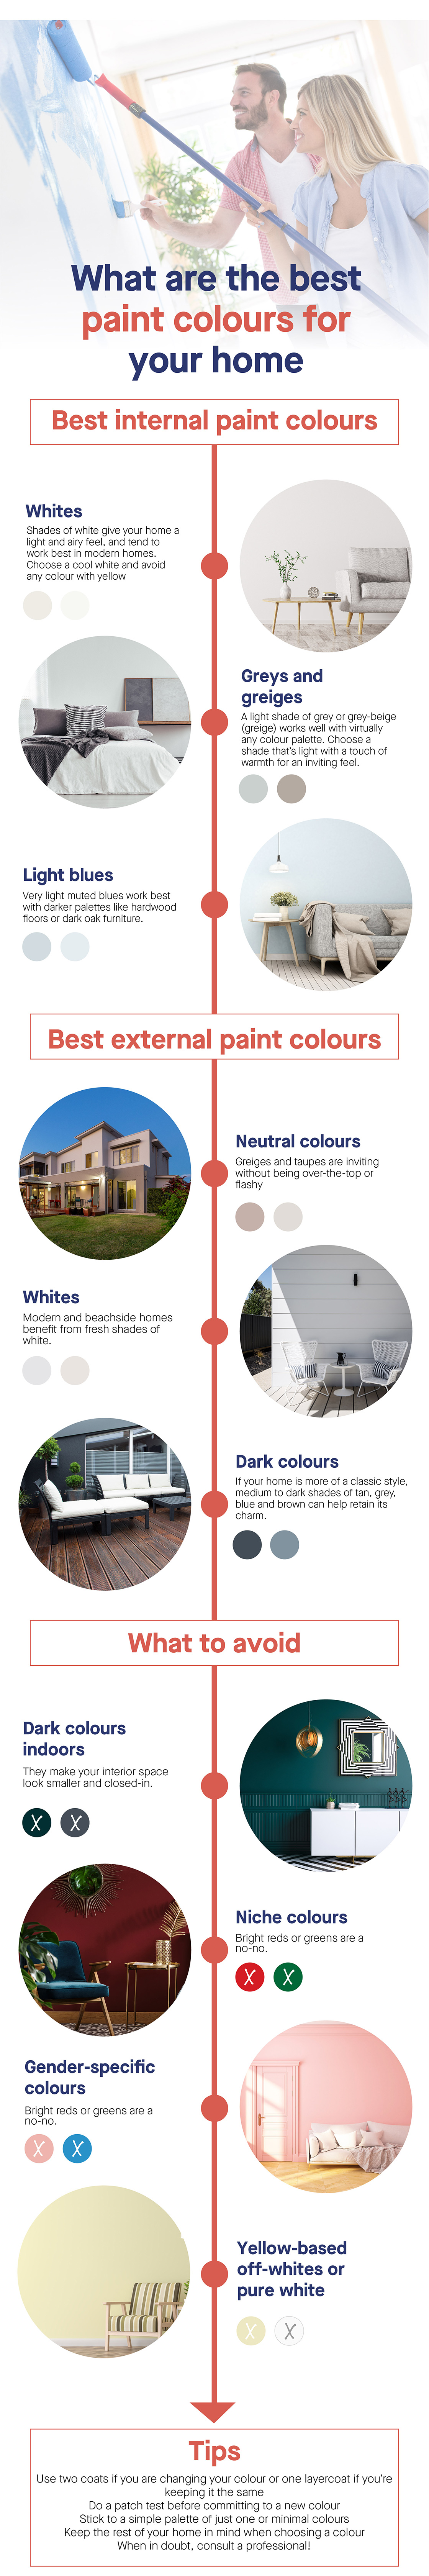 The Power of Color: The Best Paint Colors When Selling Your House - Infographic